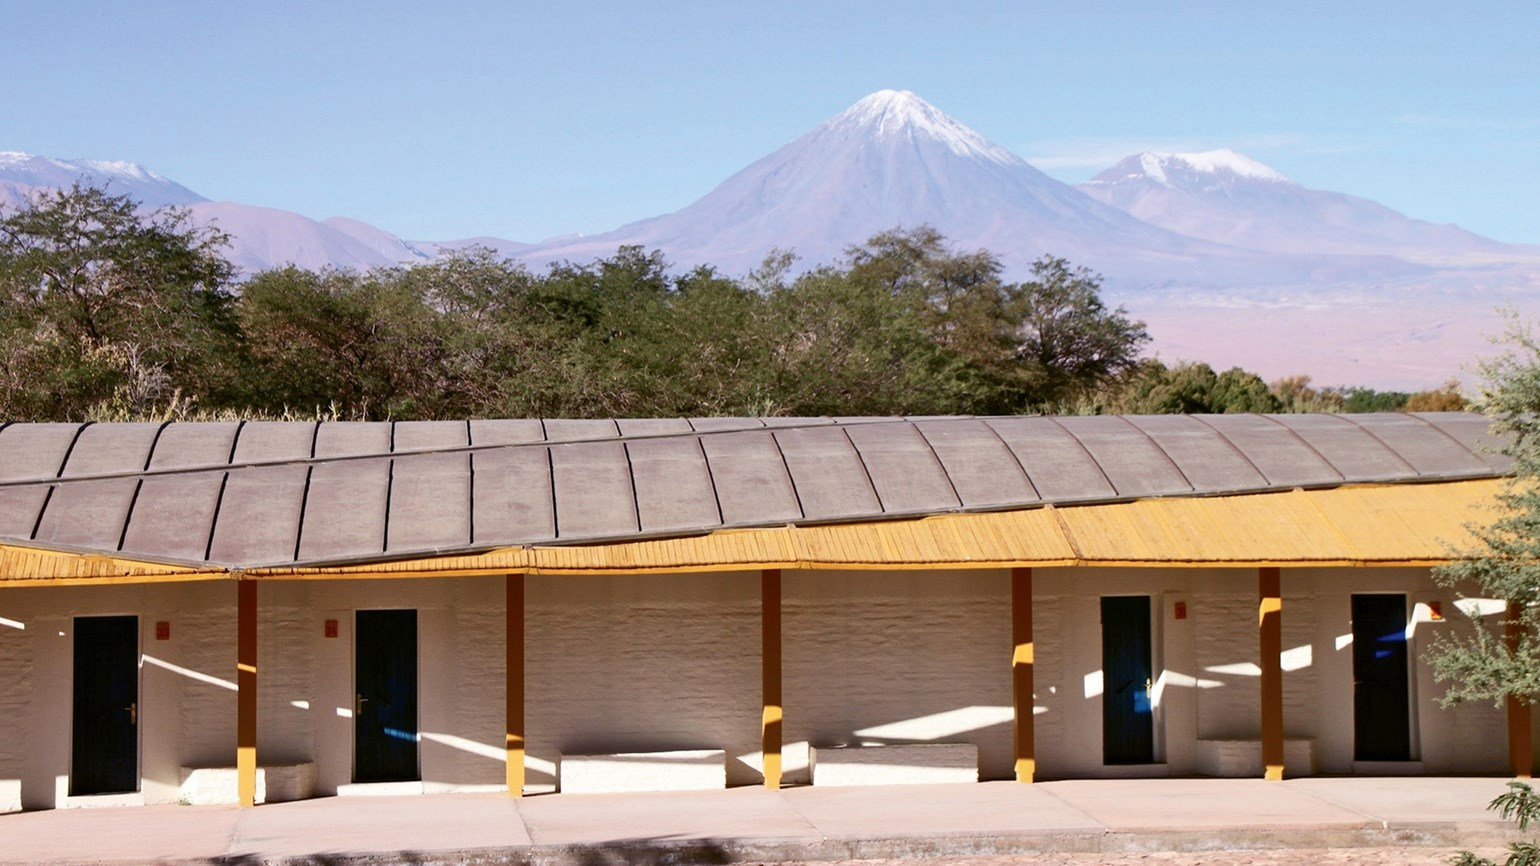 Explora Atacama: Chilean adventuring in style